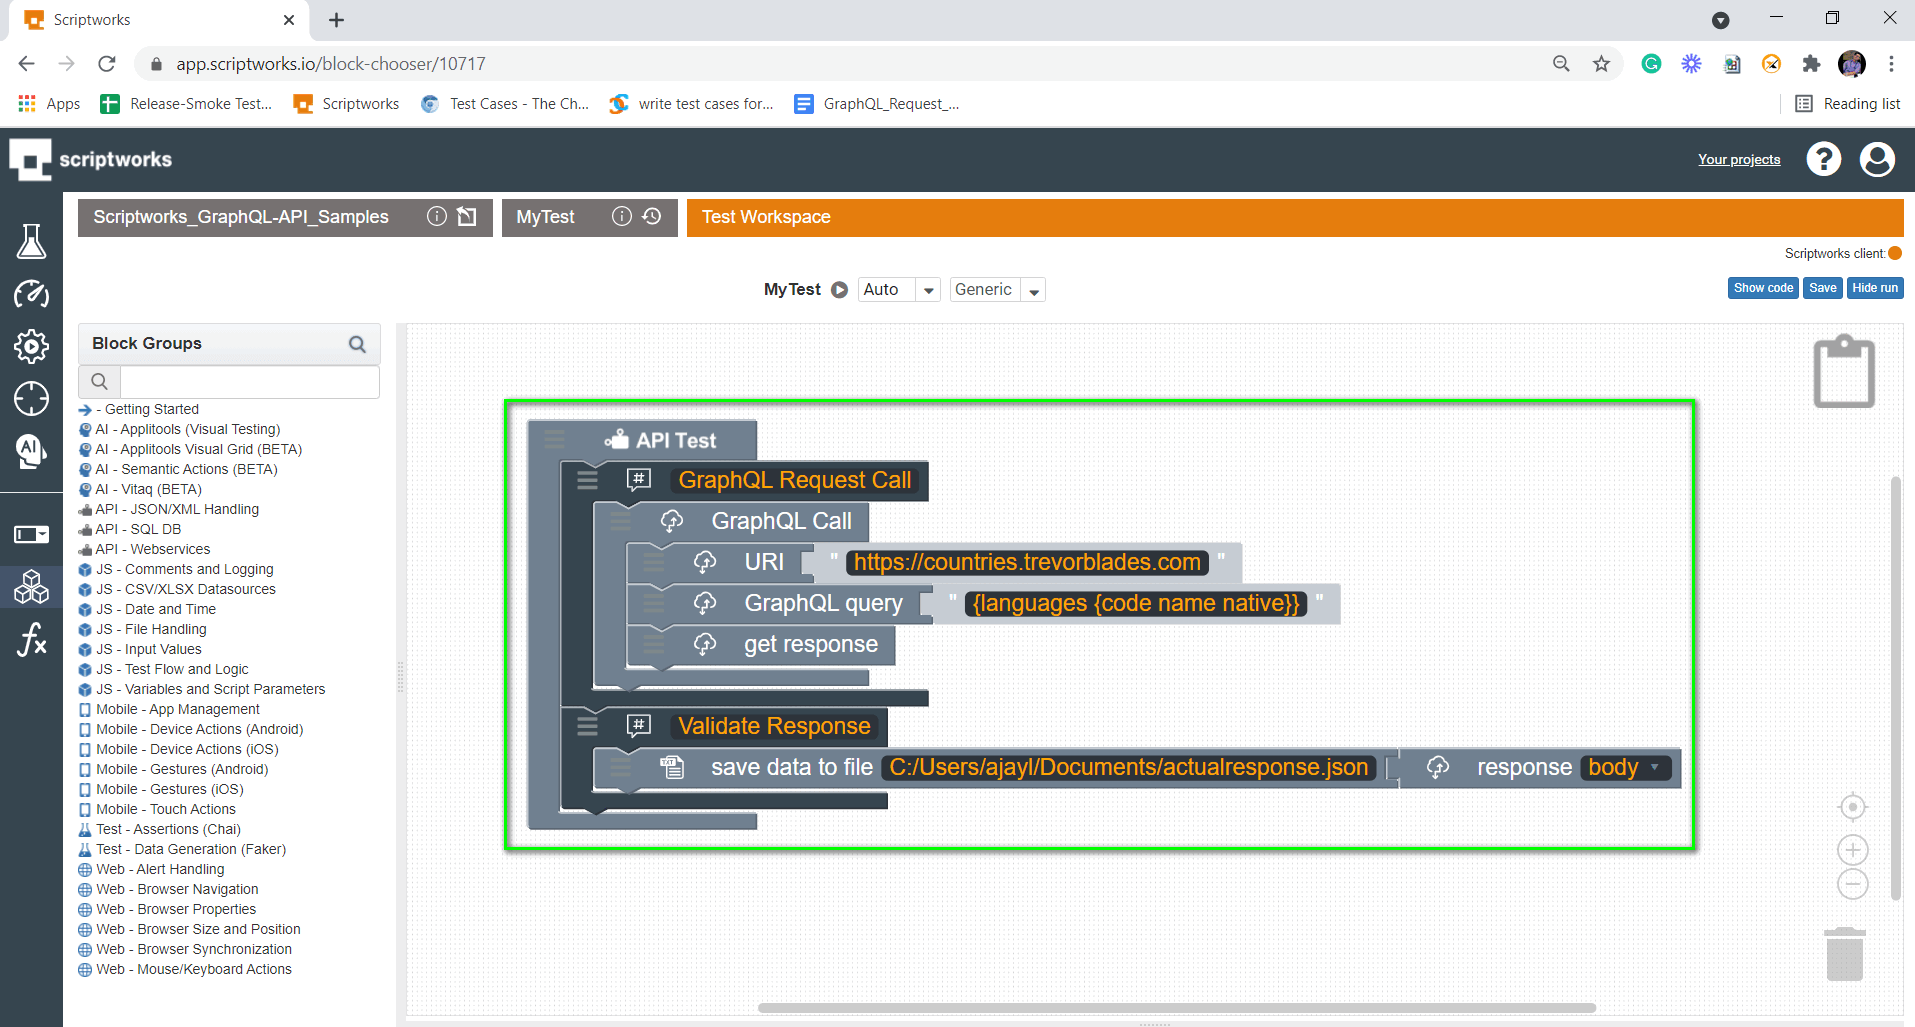 Search Save Data to file from left hand side panel